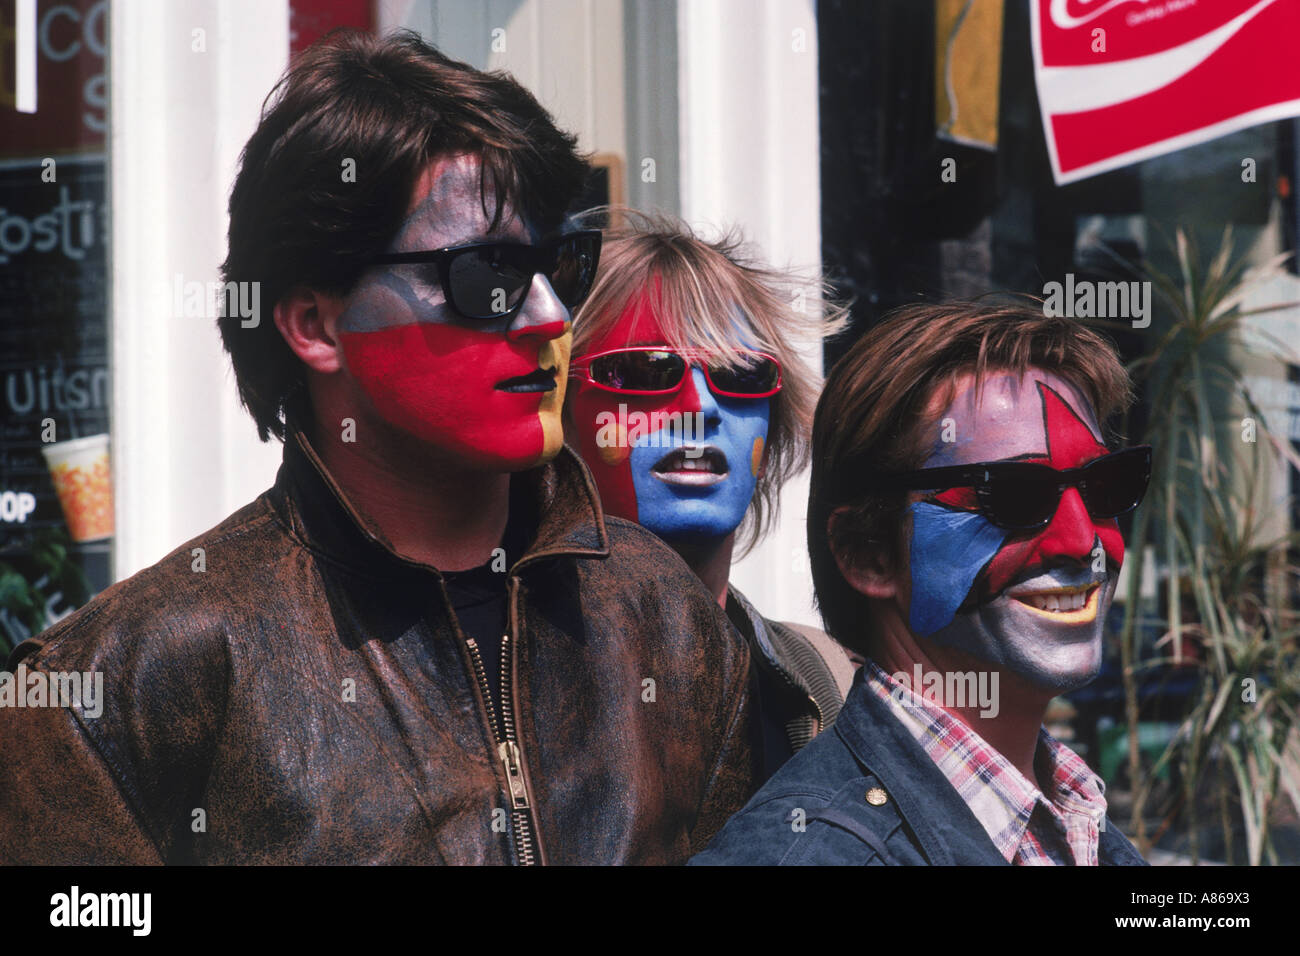 Soccer fans in Amsterdam with painted faces on game day - Stock Image